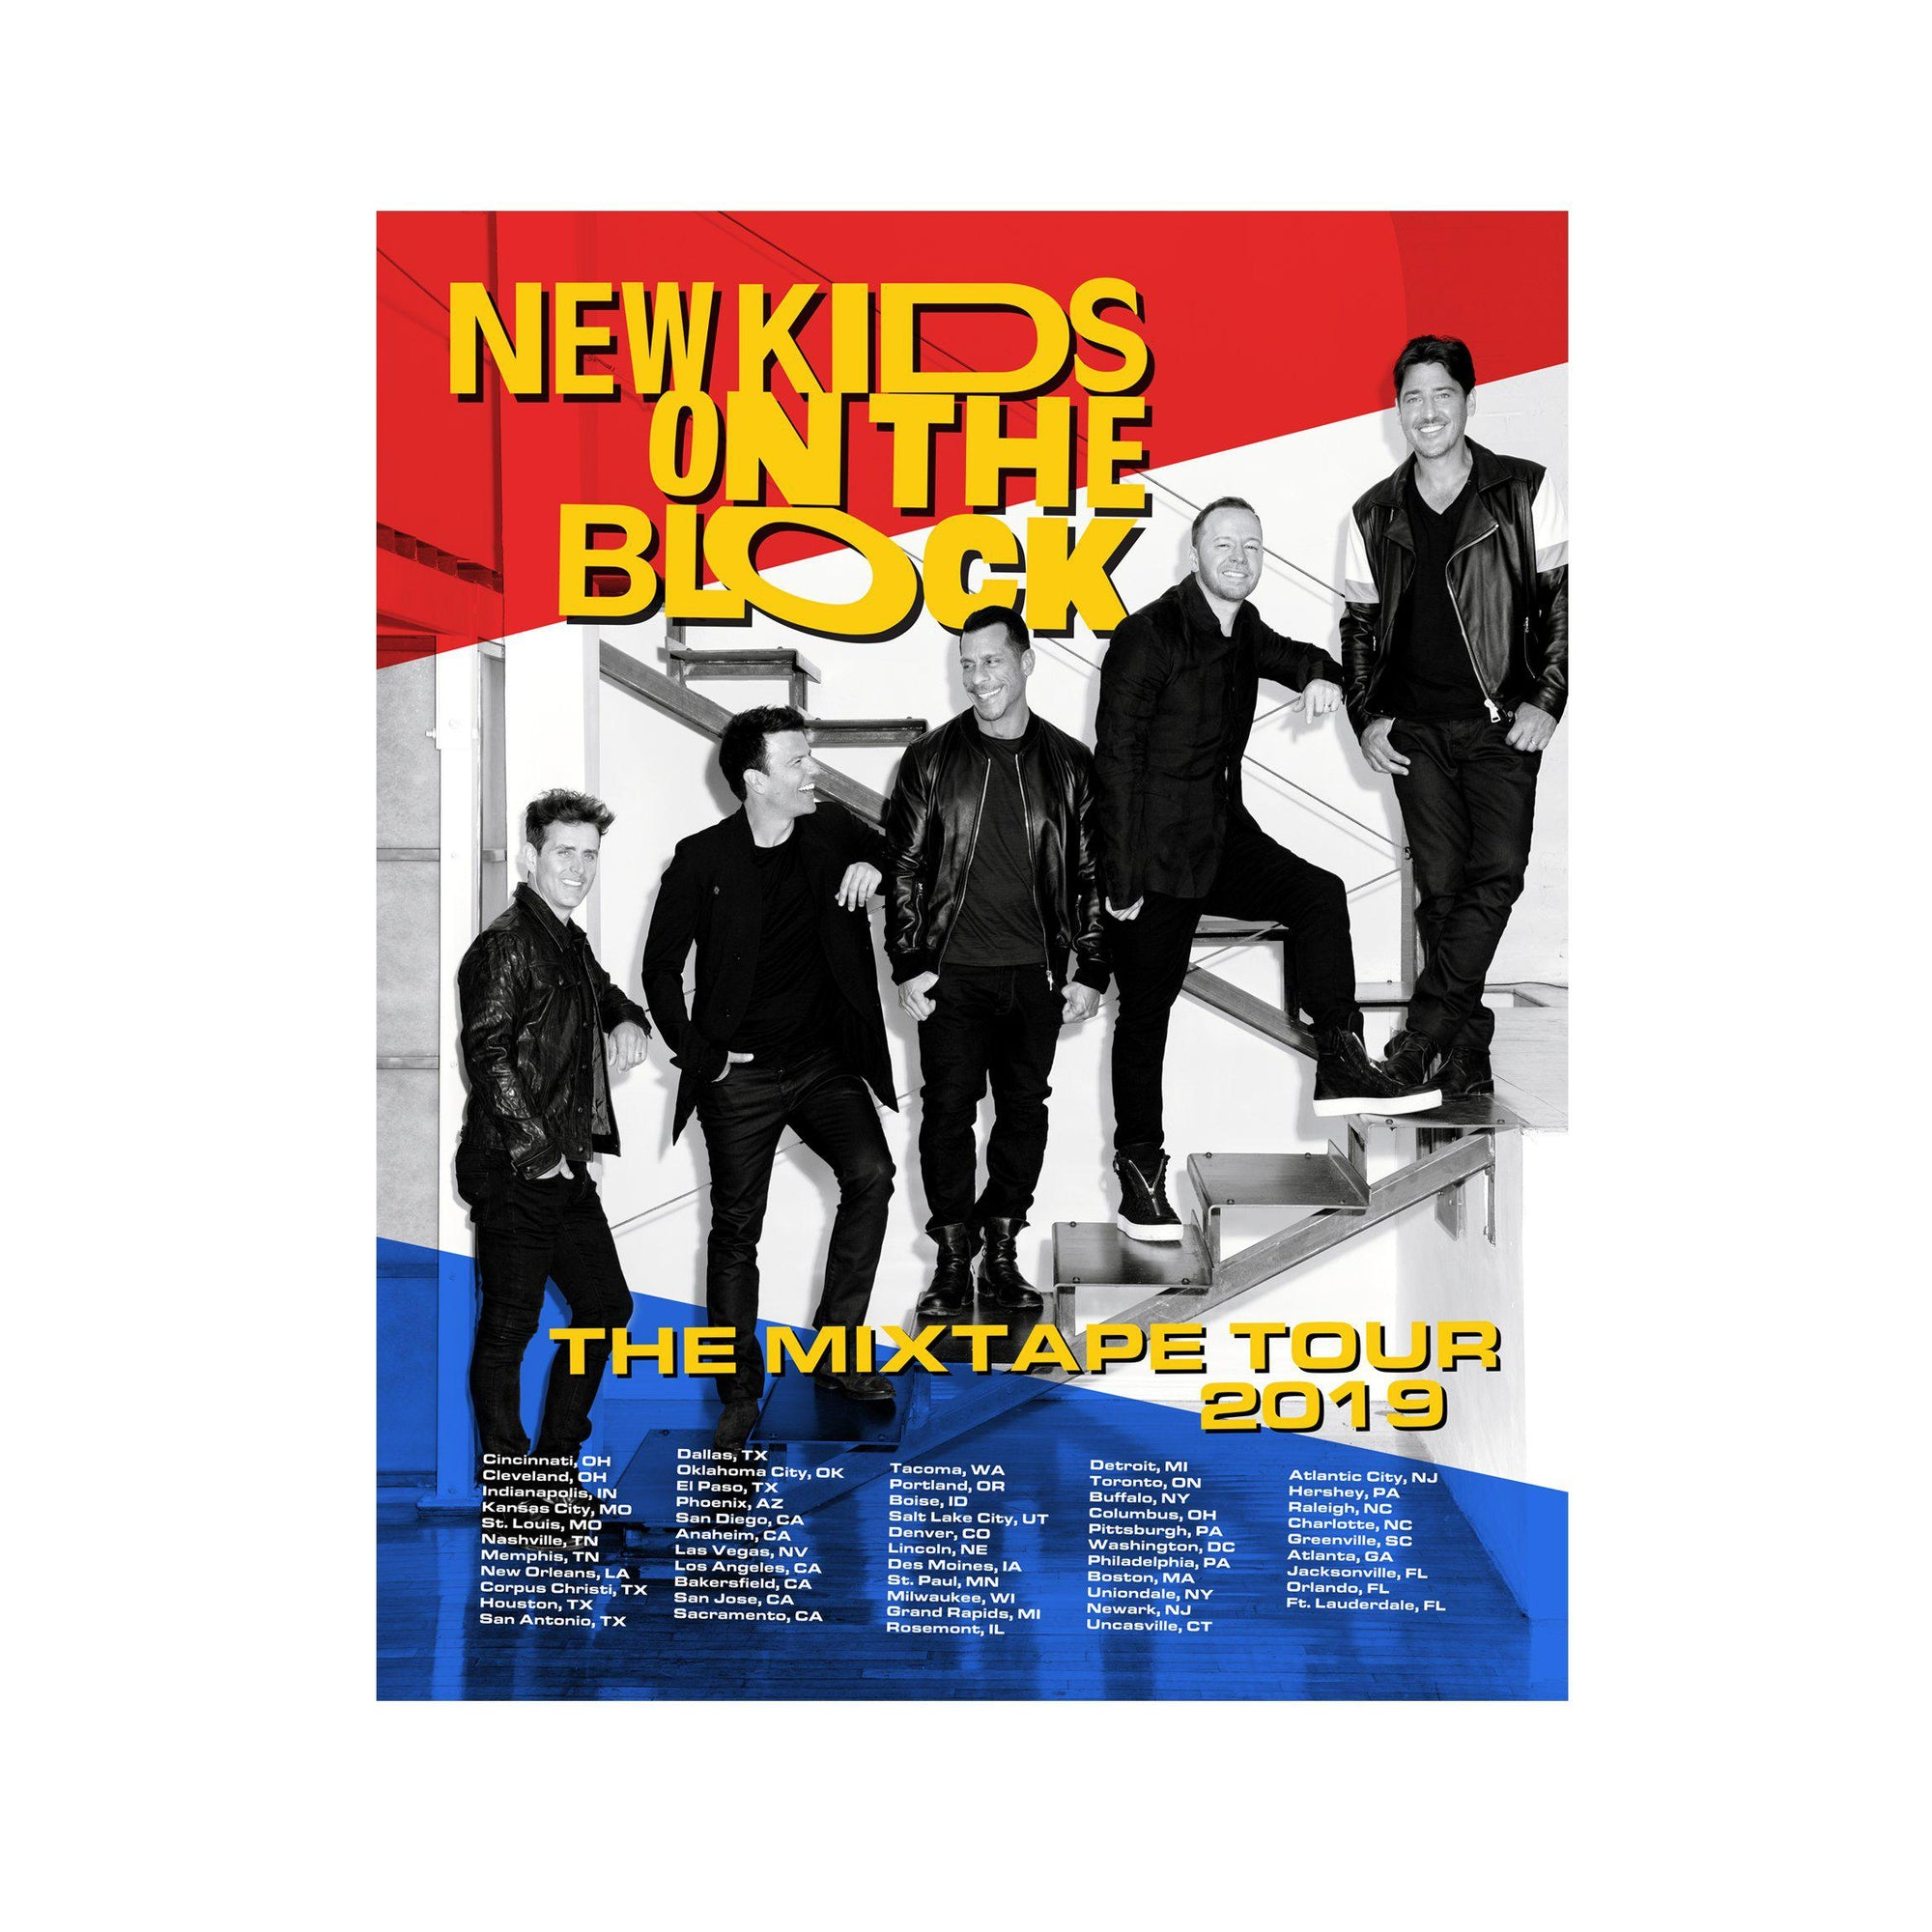 6cecade76 New Kids on the Block - The Mixtape tour poster - New Kids on the ...